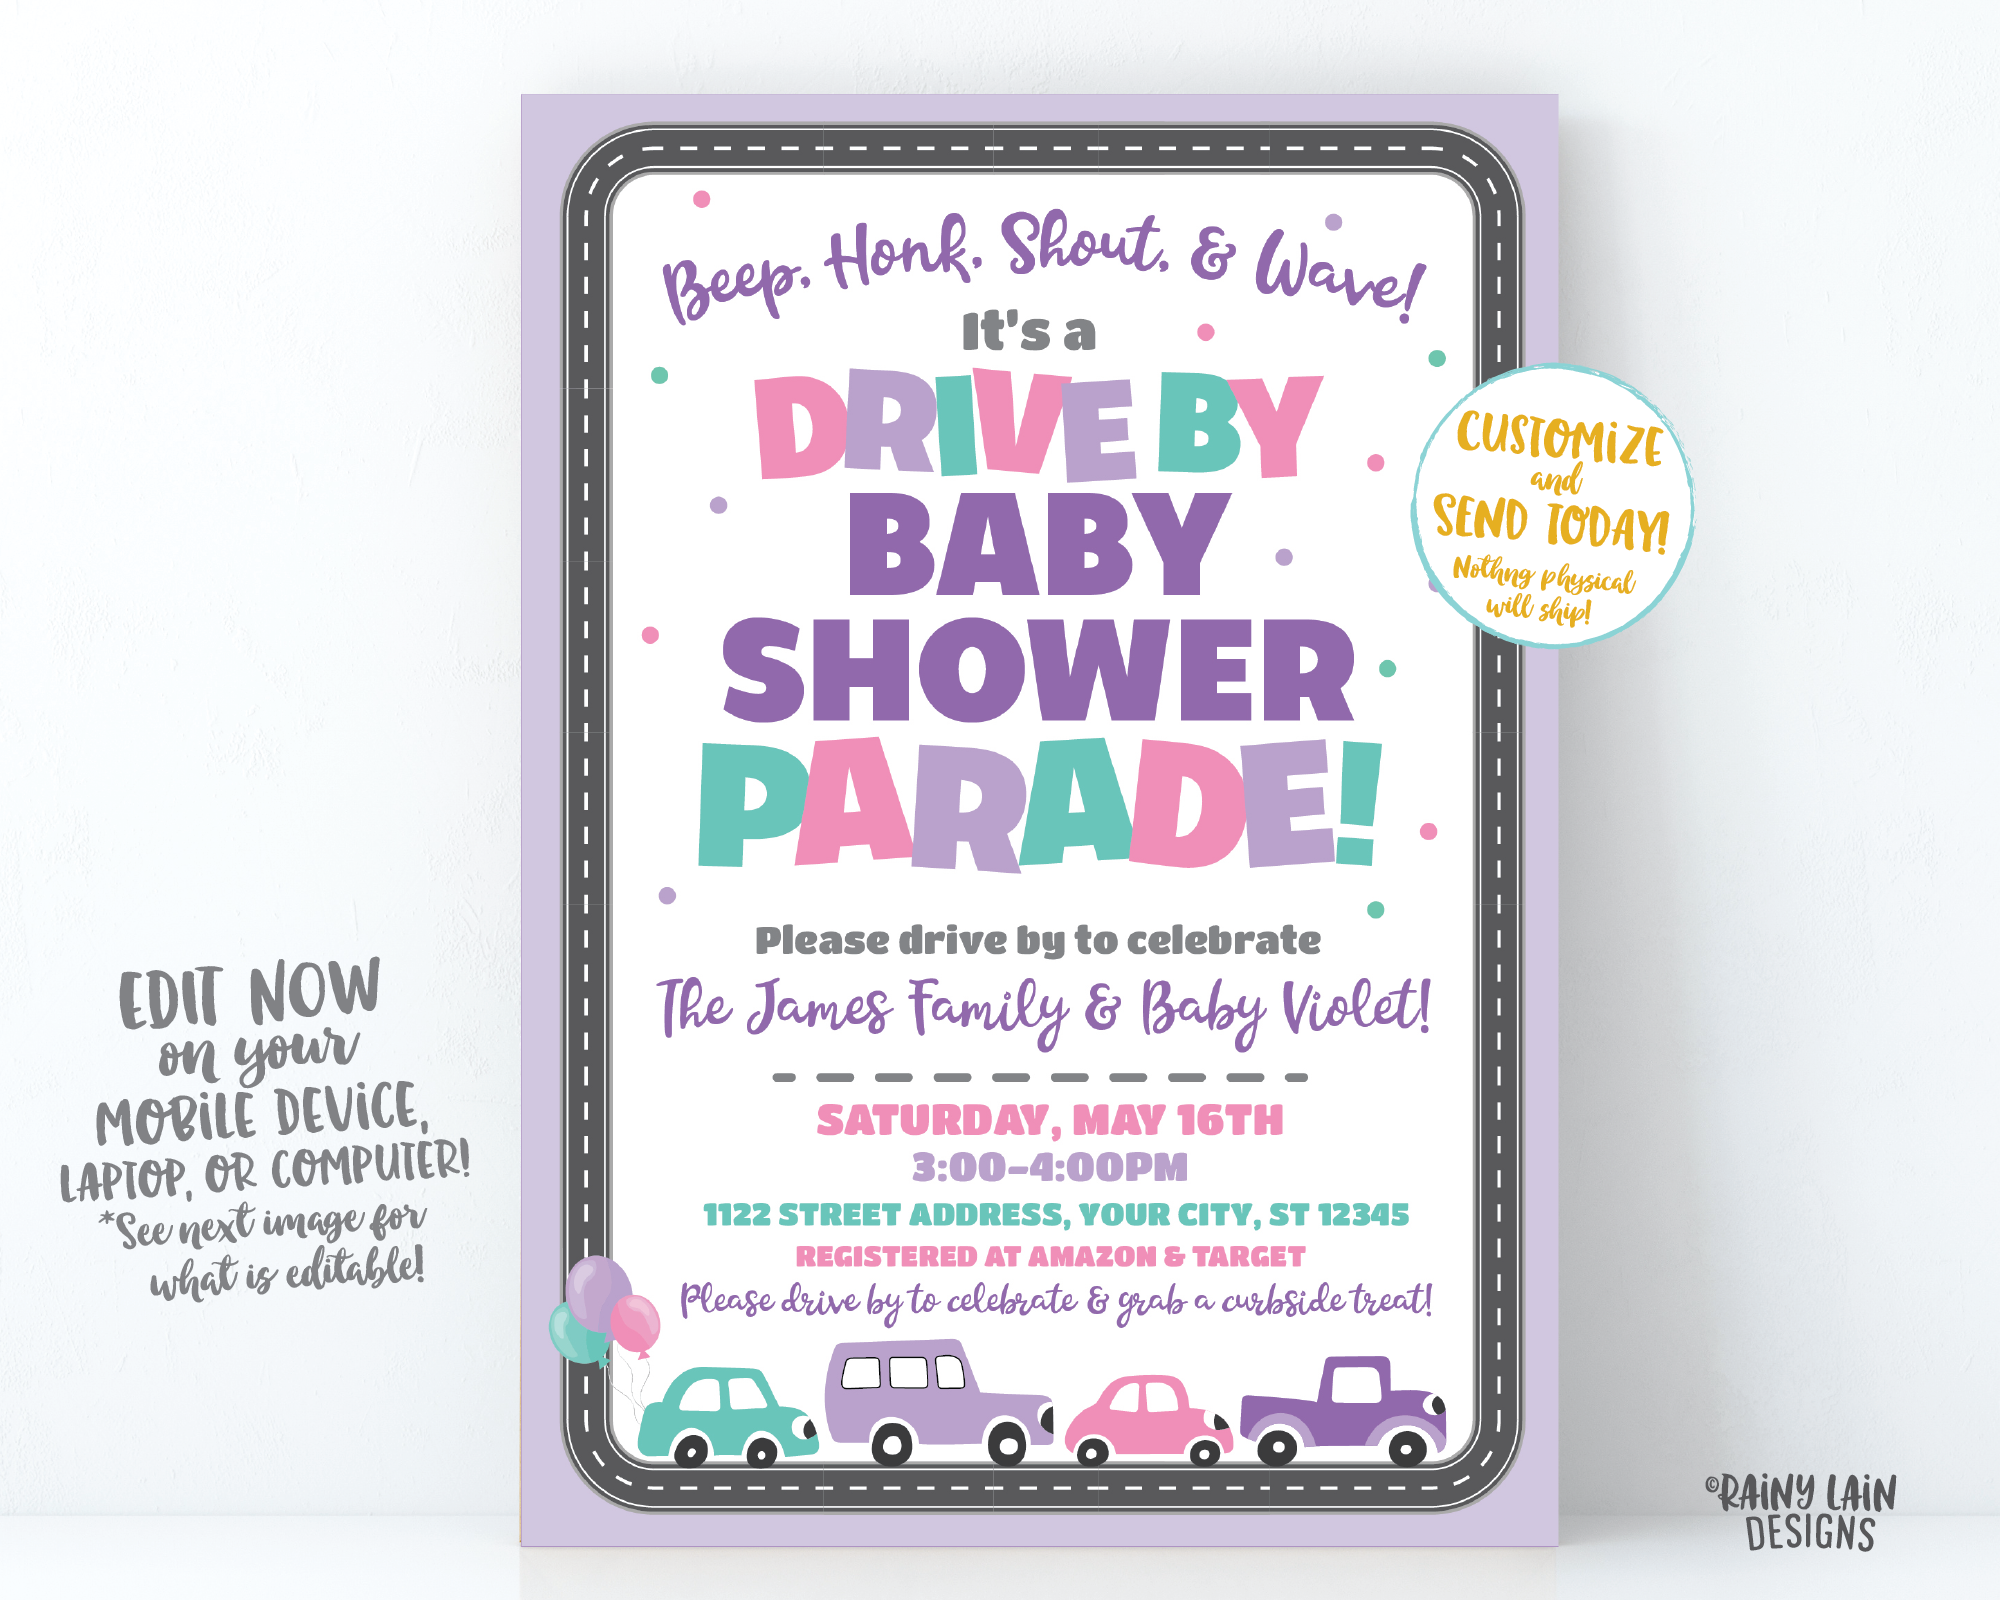 Drive By Baby Shower Invitation Purple Drive By Baby Shower Invite Girl Baby Shower Drive By Parade Social Distancing Baby Shower Car Parade